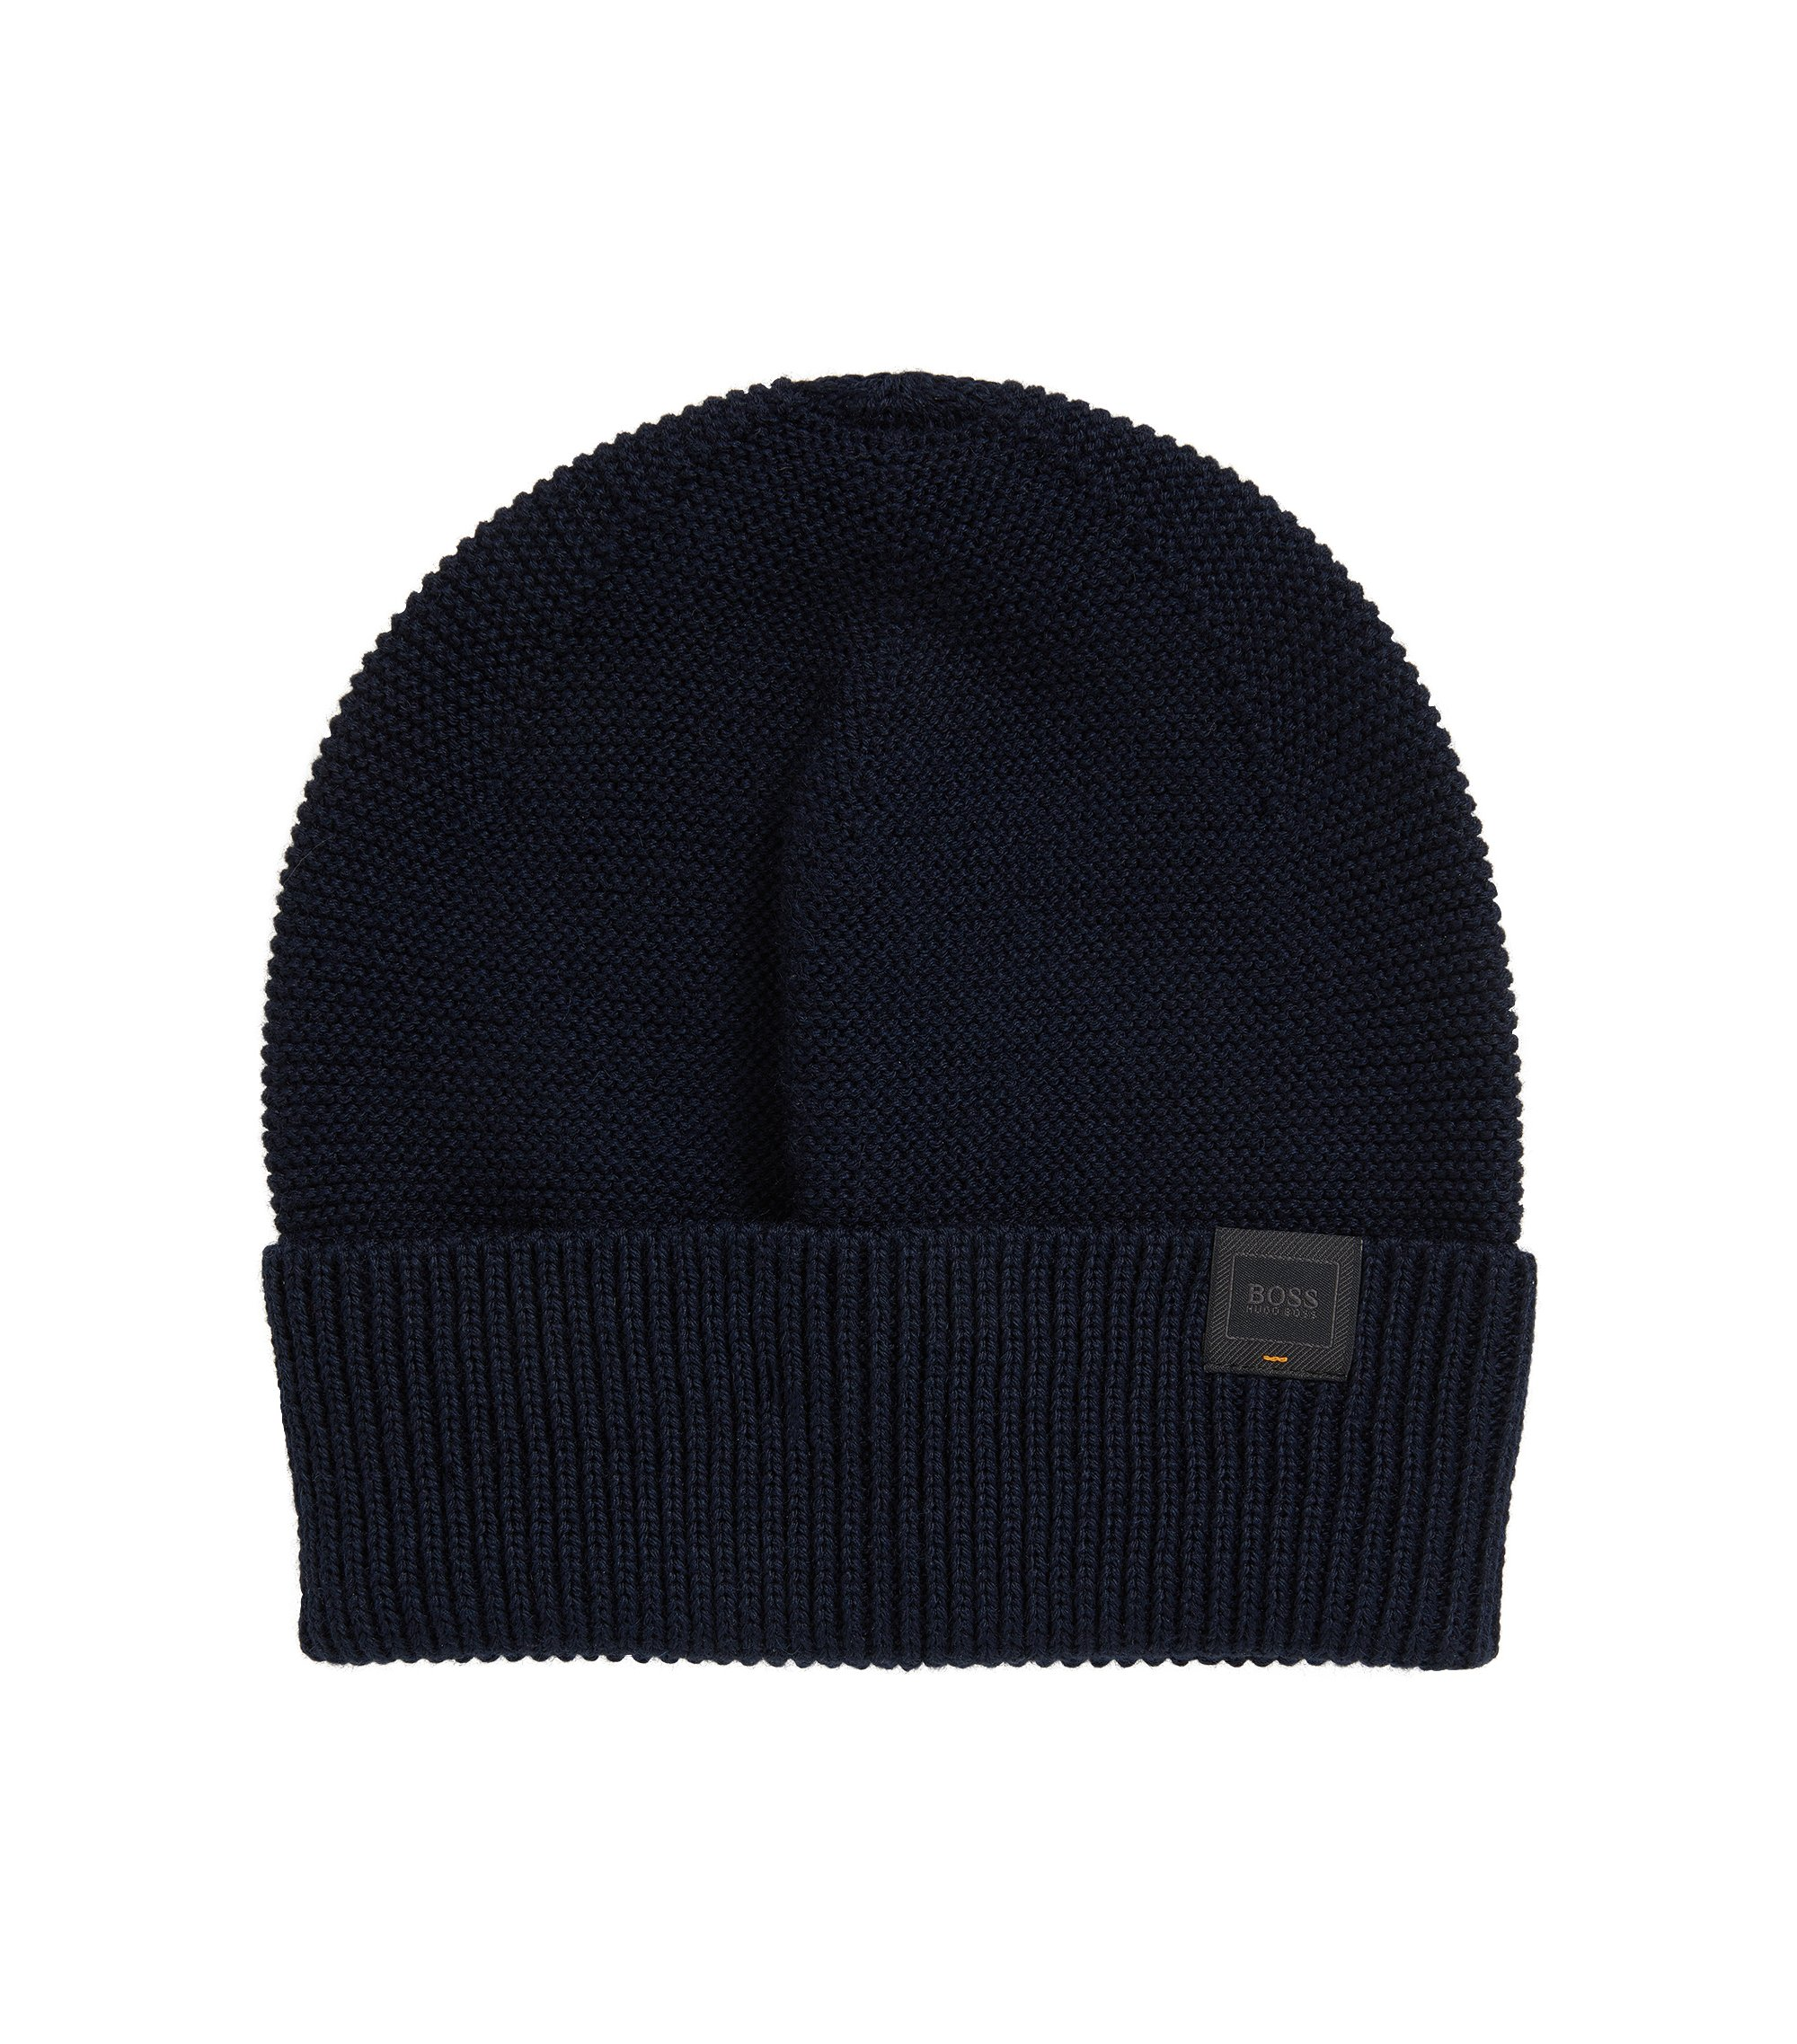 Knitted beanie hat with woven logo label, Dark Blue